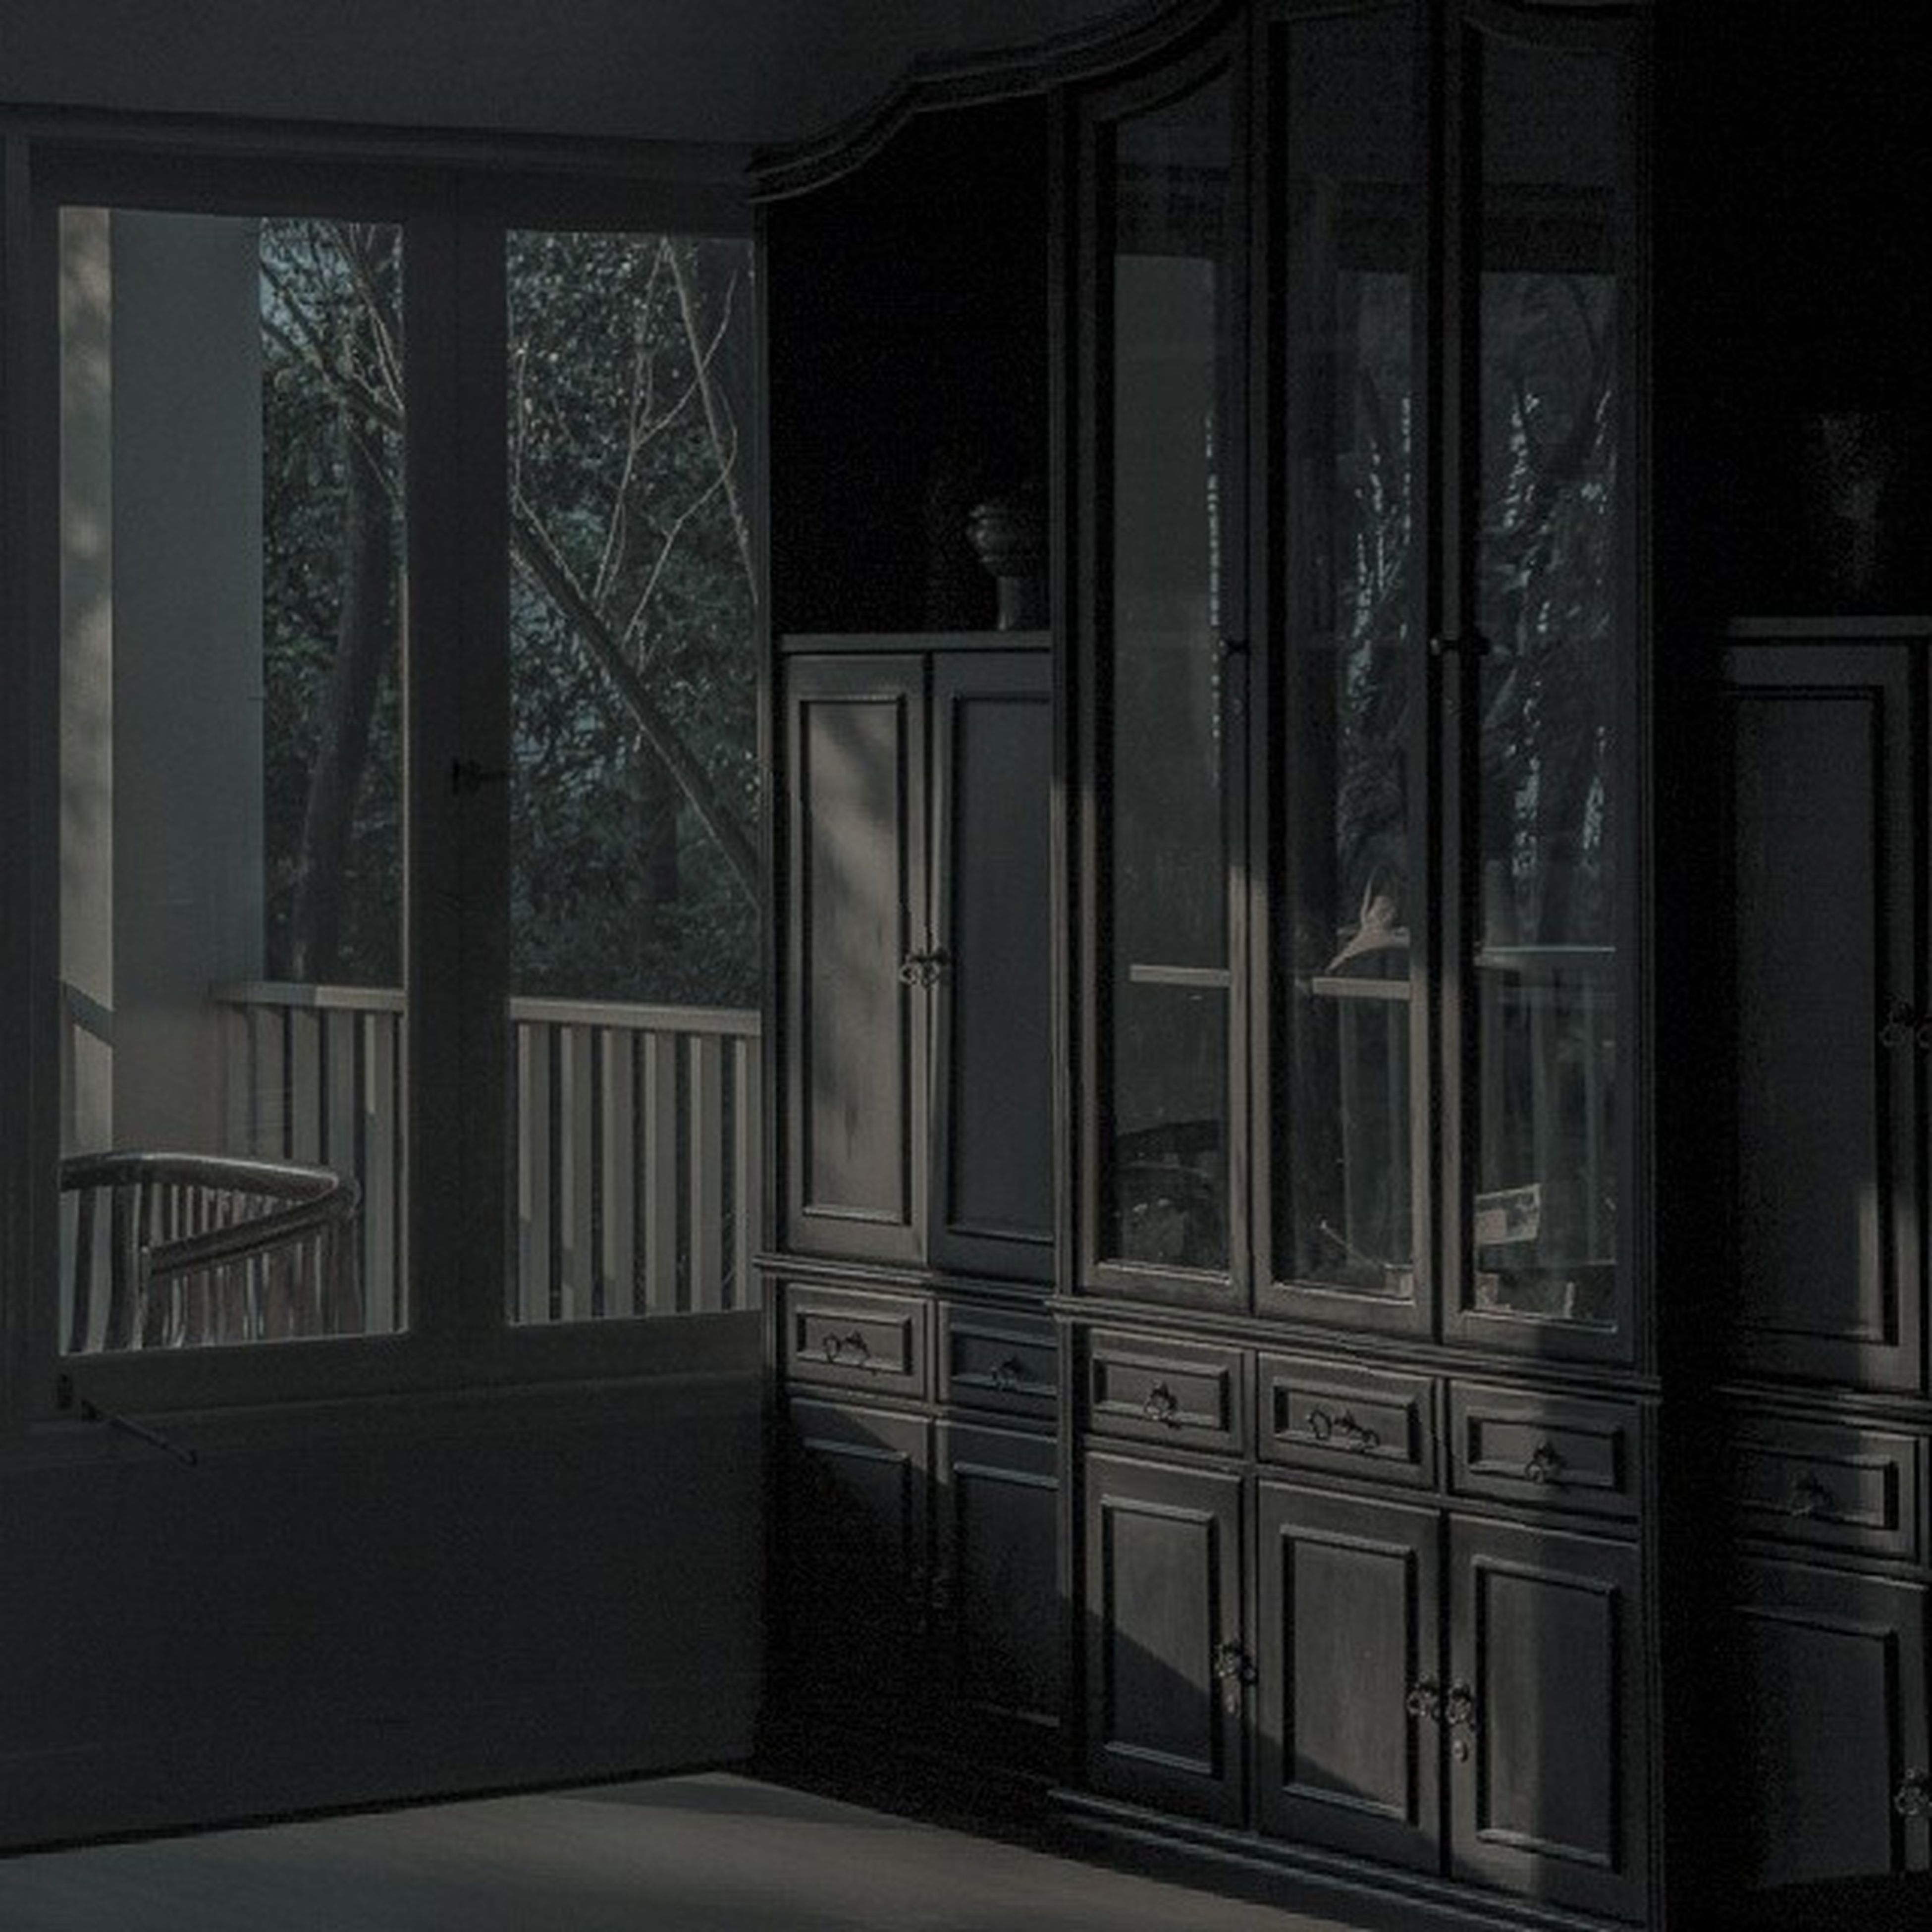 architecture, built structure, window, door, indoors, building exterior, closed, house, entrance, wood - material, old, no people, building, glass - material, open, day, sunlight, residential structure, architectural column, doorway